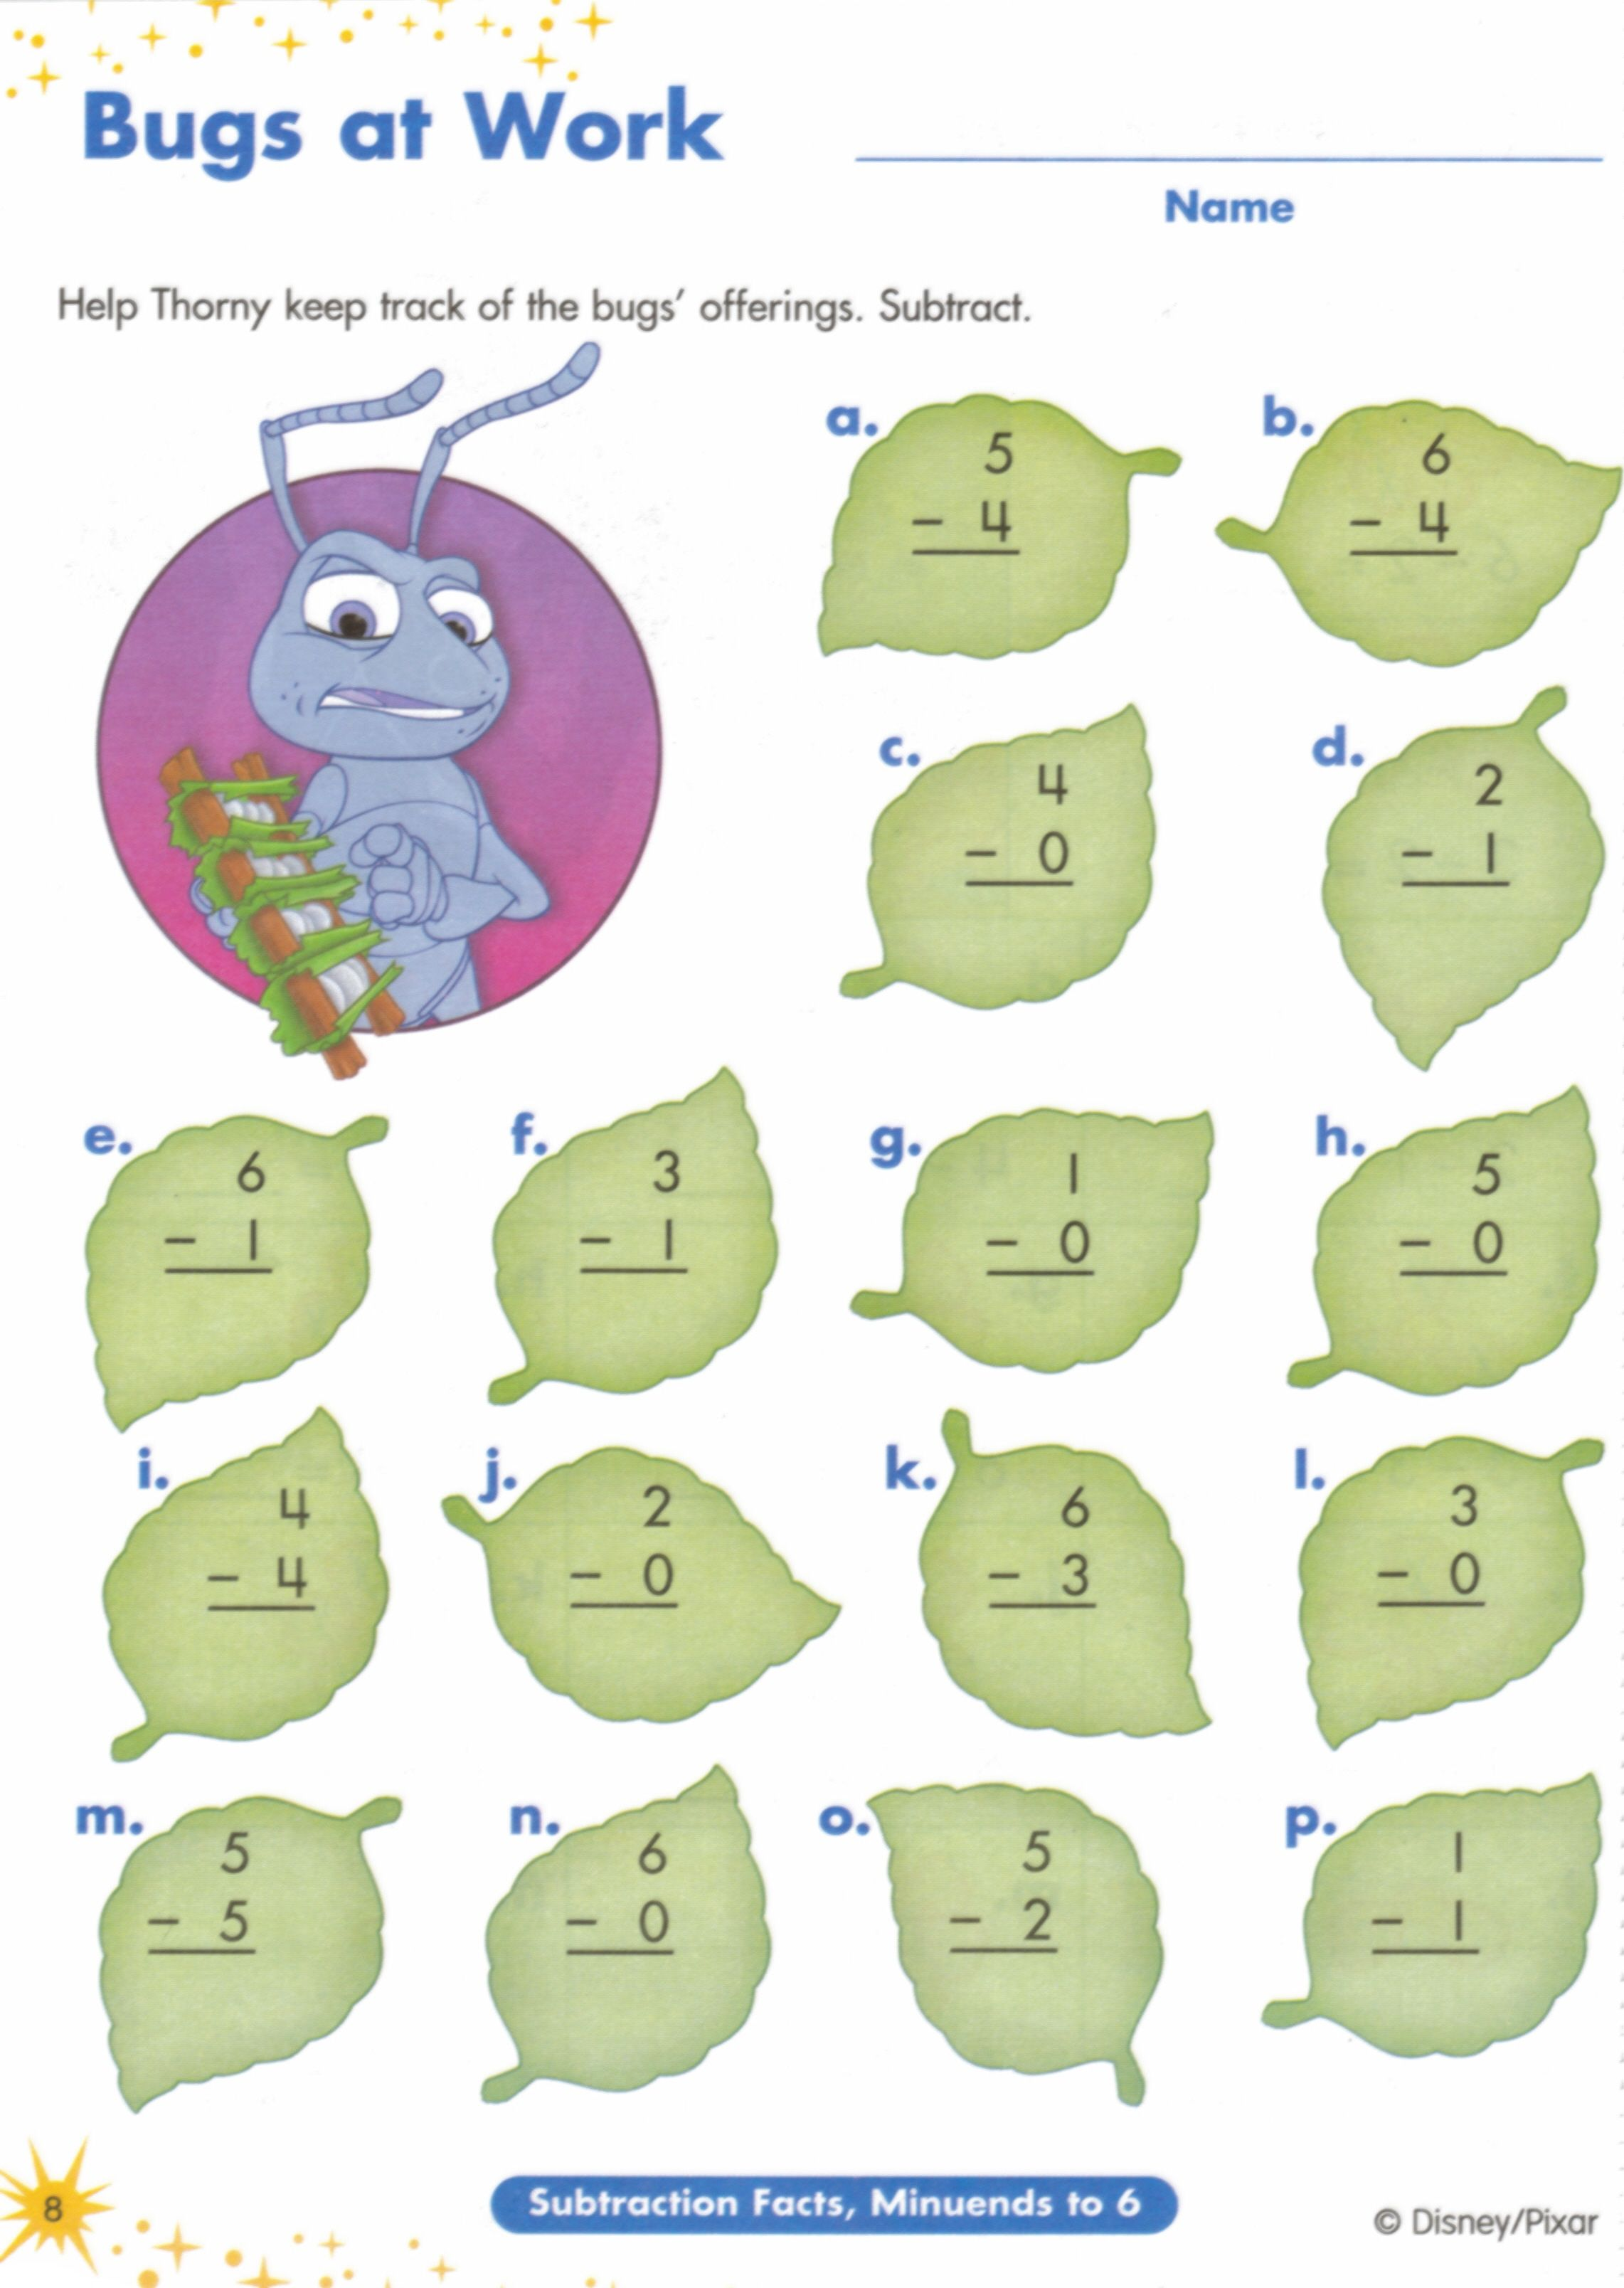 Proatmealus  Wonderful  Images About Worksheets On Pinterest  Fun Facts For Kids  With Lovely  Images About Worksheets On Pinterest  Fun Facts For Kids Earth Day Worksheets And Jungles With Cute Fractions Of A Set Worksheets Also Mass Vs Weight Worksheet In Addition Grammar Worksheets For High School And Chemical Reaction Worksheet Answers As Well As Coloring Worksheet Additionally The Mcgrawhill Companies Worksheet Answers From Pinterestcom With Proatmealus  Lovely  Images About Worksheets On Pinterest  Fun Facts For Kids  With Cute  Images About Worksheets On Pinterest  Fun Facts For Kids Earth Day Worksheets And Jungles And Wonderful Fractions Of A Set Worksheets Also Mass Vs Weight Worksheet In Addition Grammar Worksheets For High School From Pinterestcom